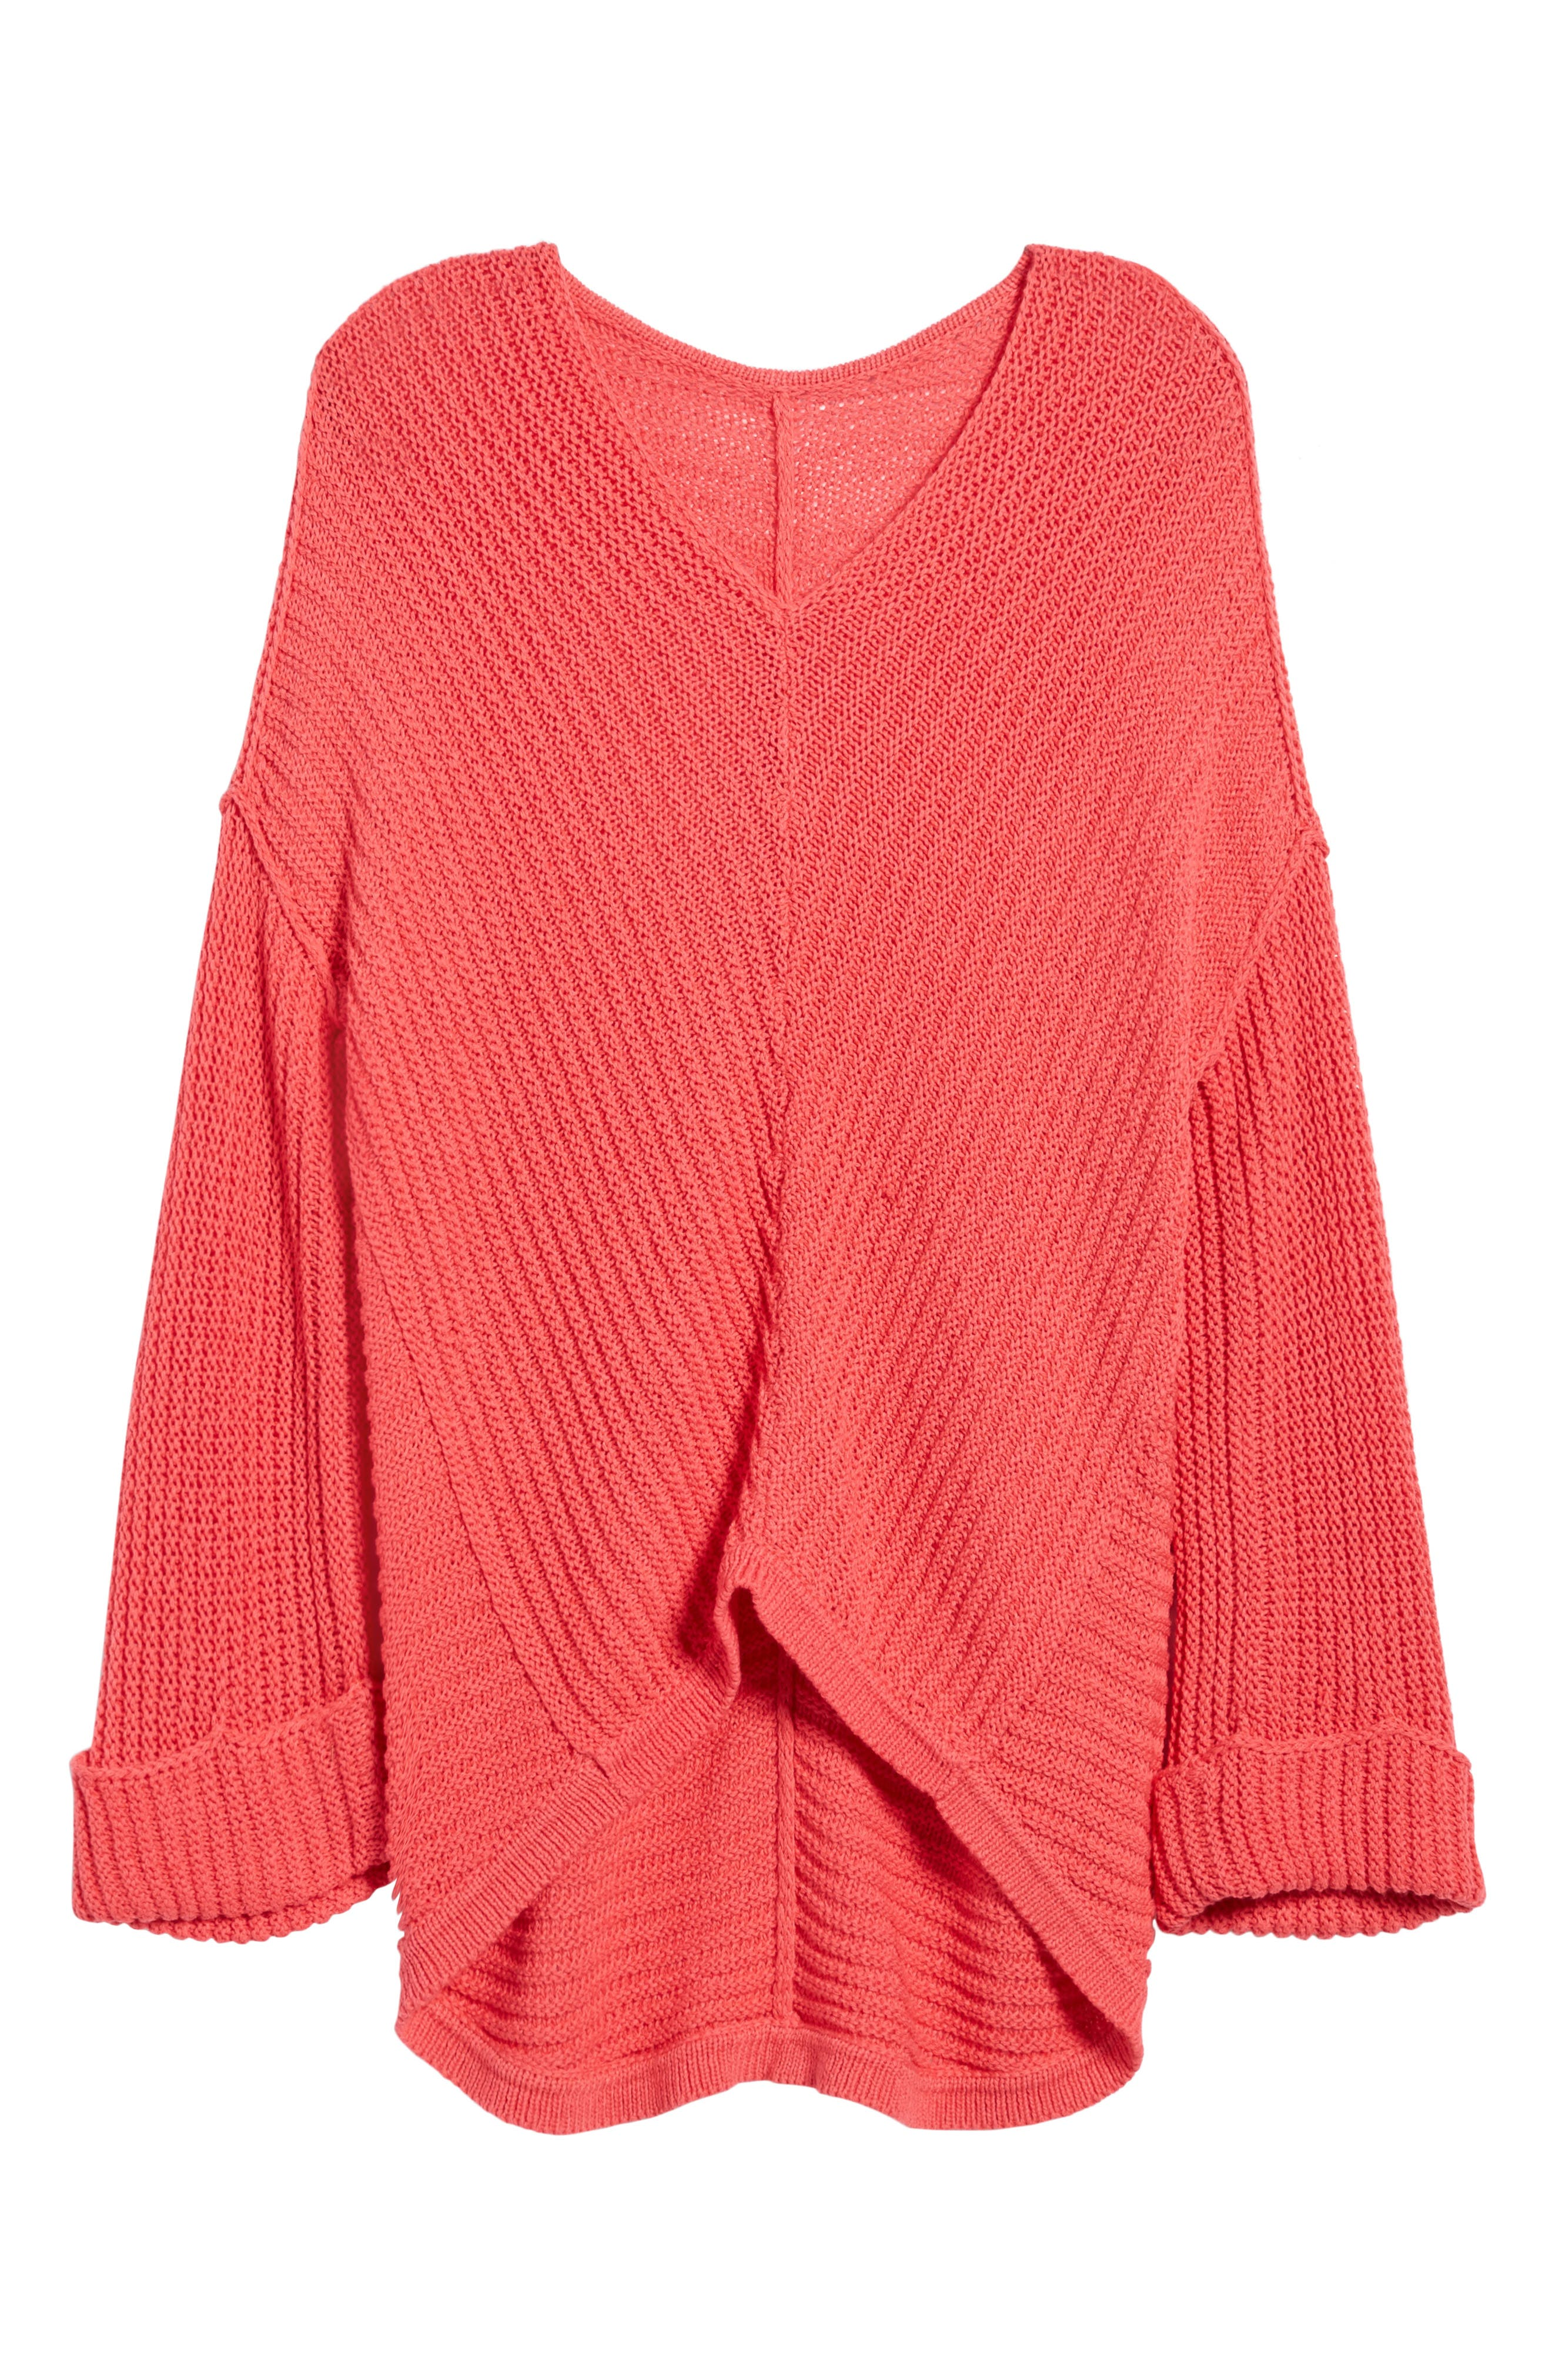 ,                             Cuffed Sleeve Sweater,                             Alternate thumbnail 24, color,                             660